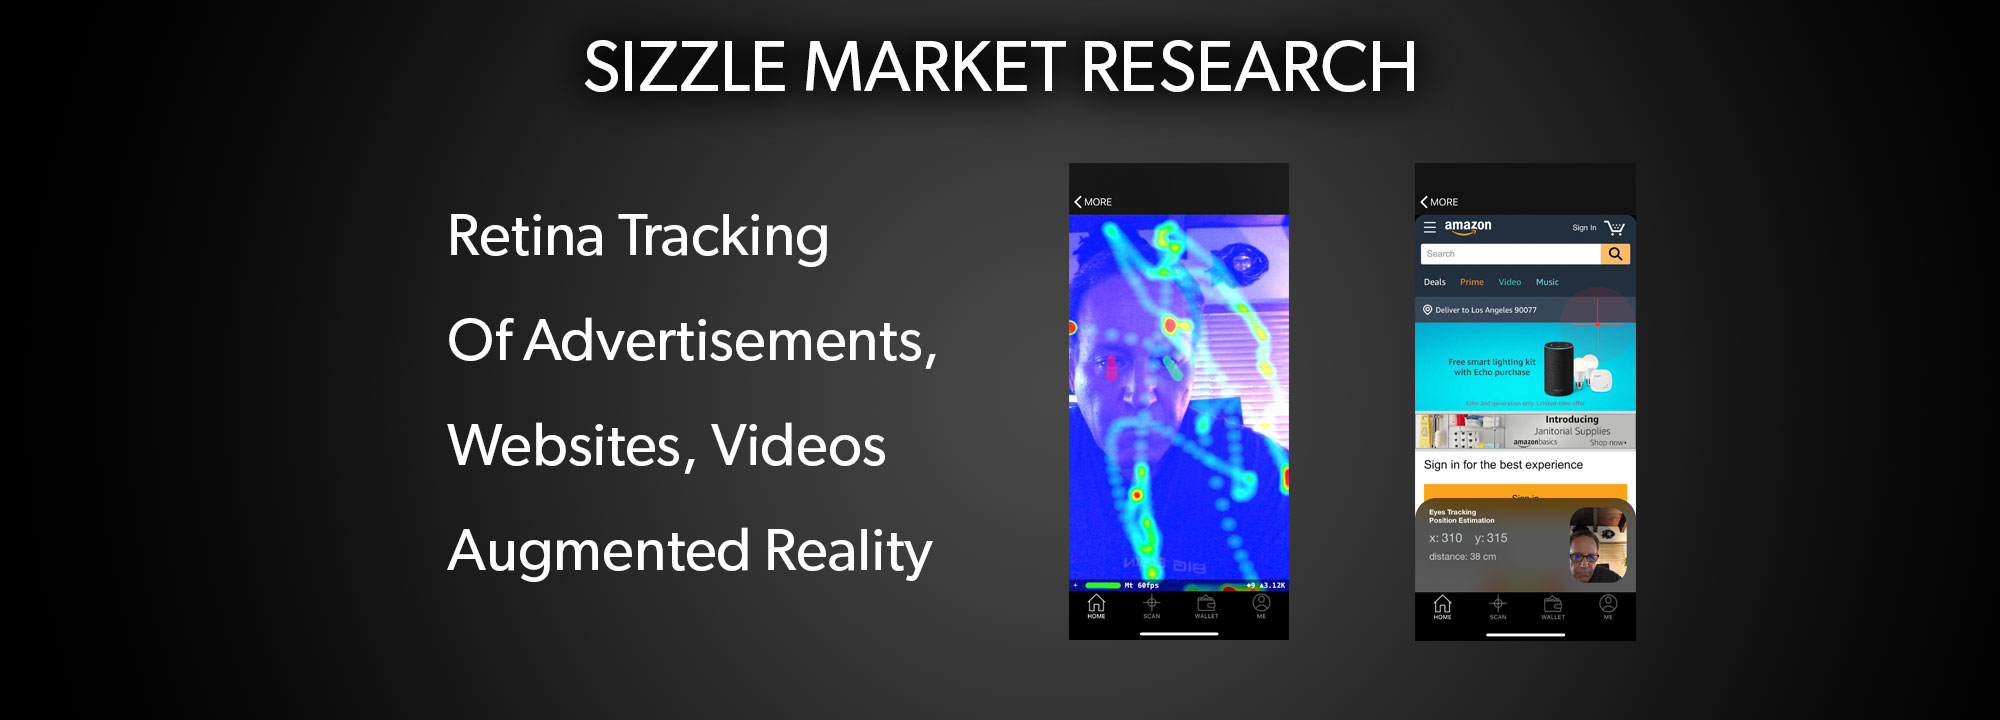 Sizzle Retina Scan Market Research System